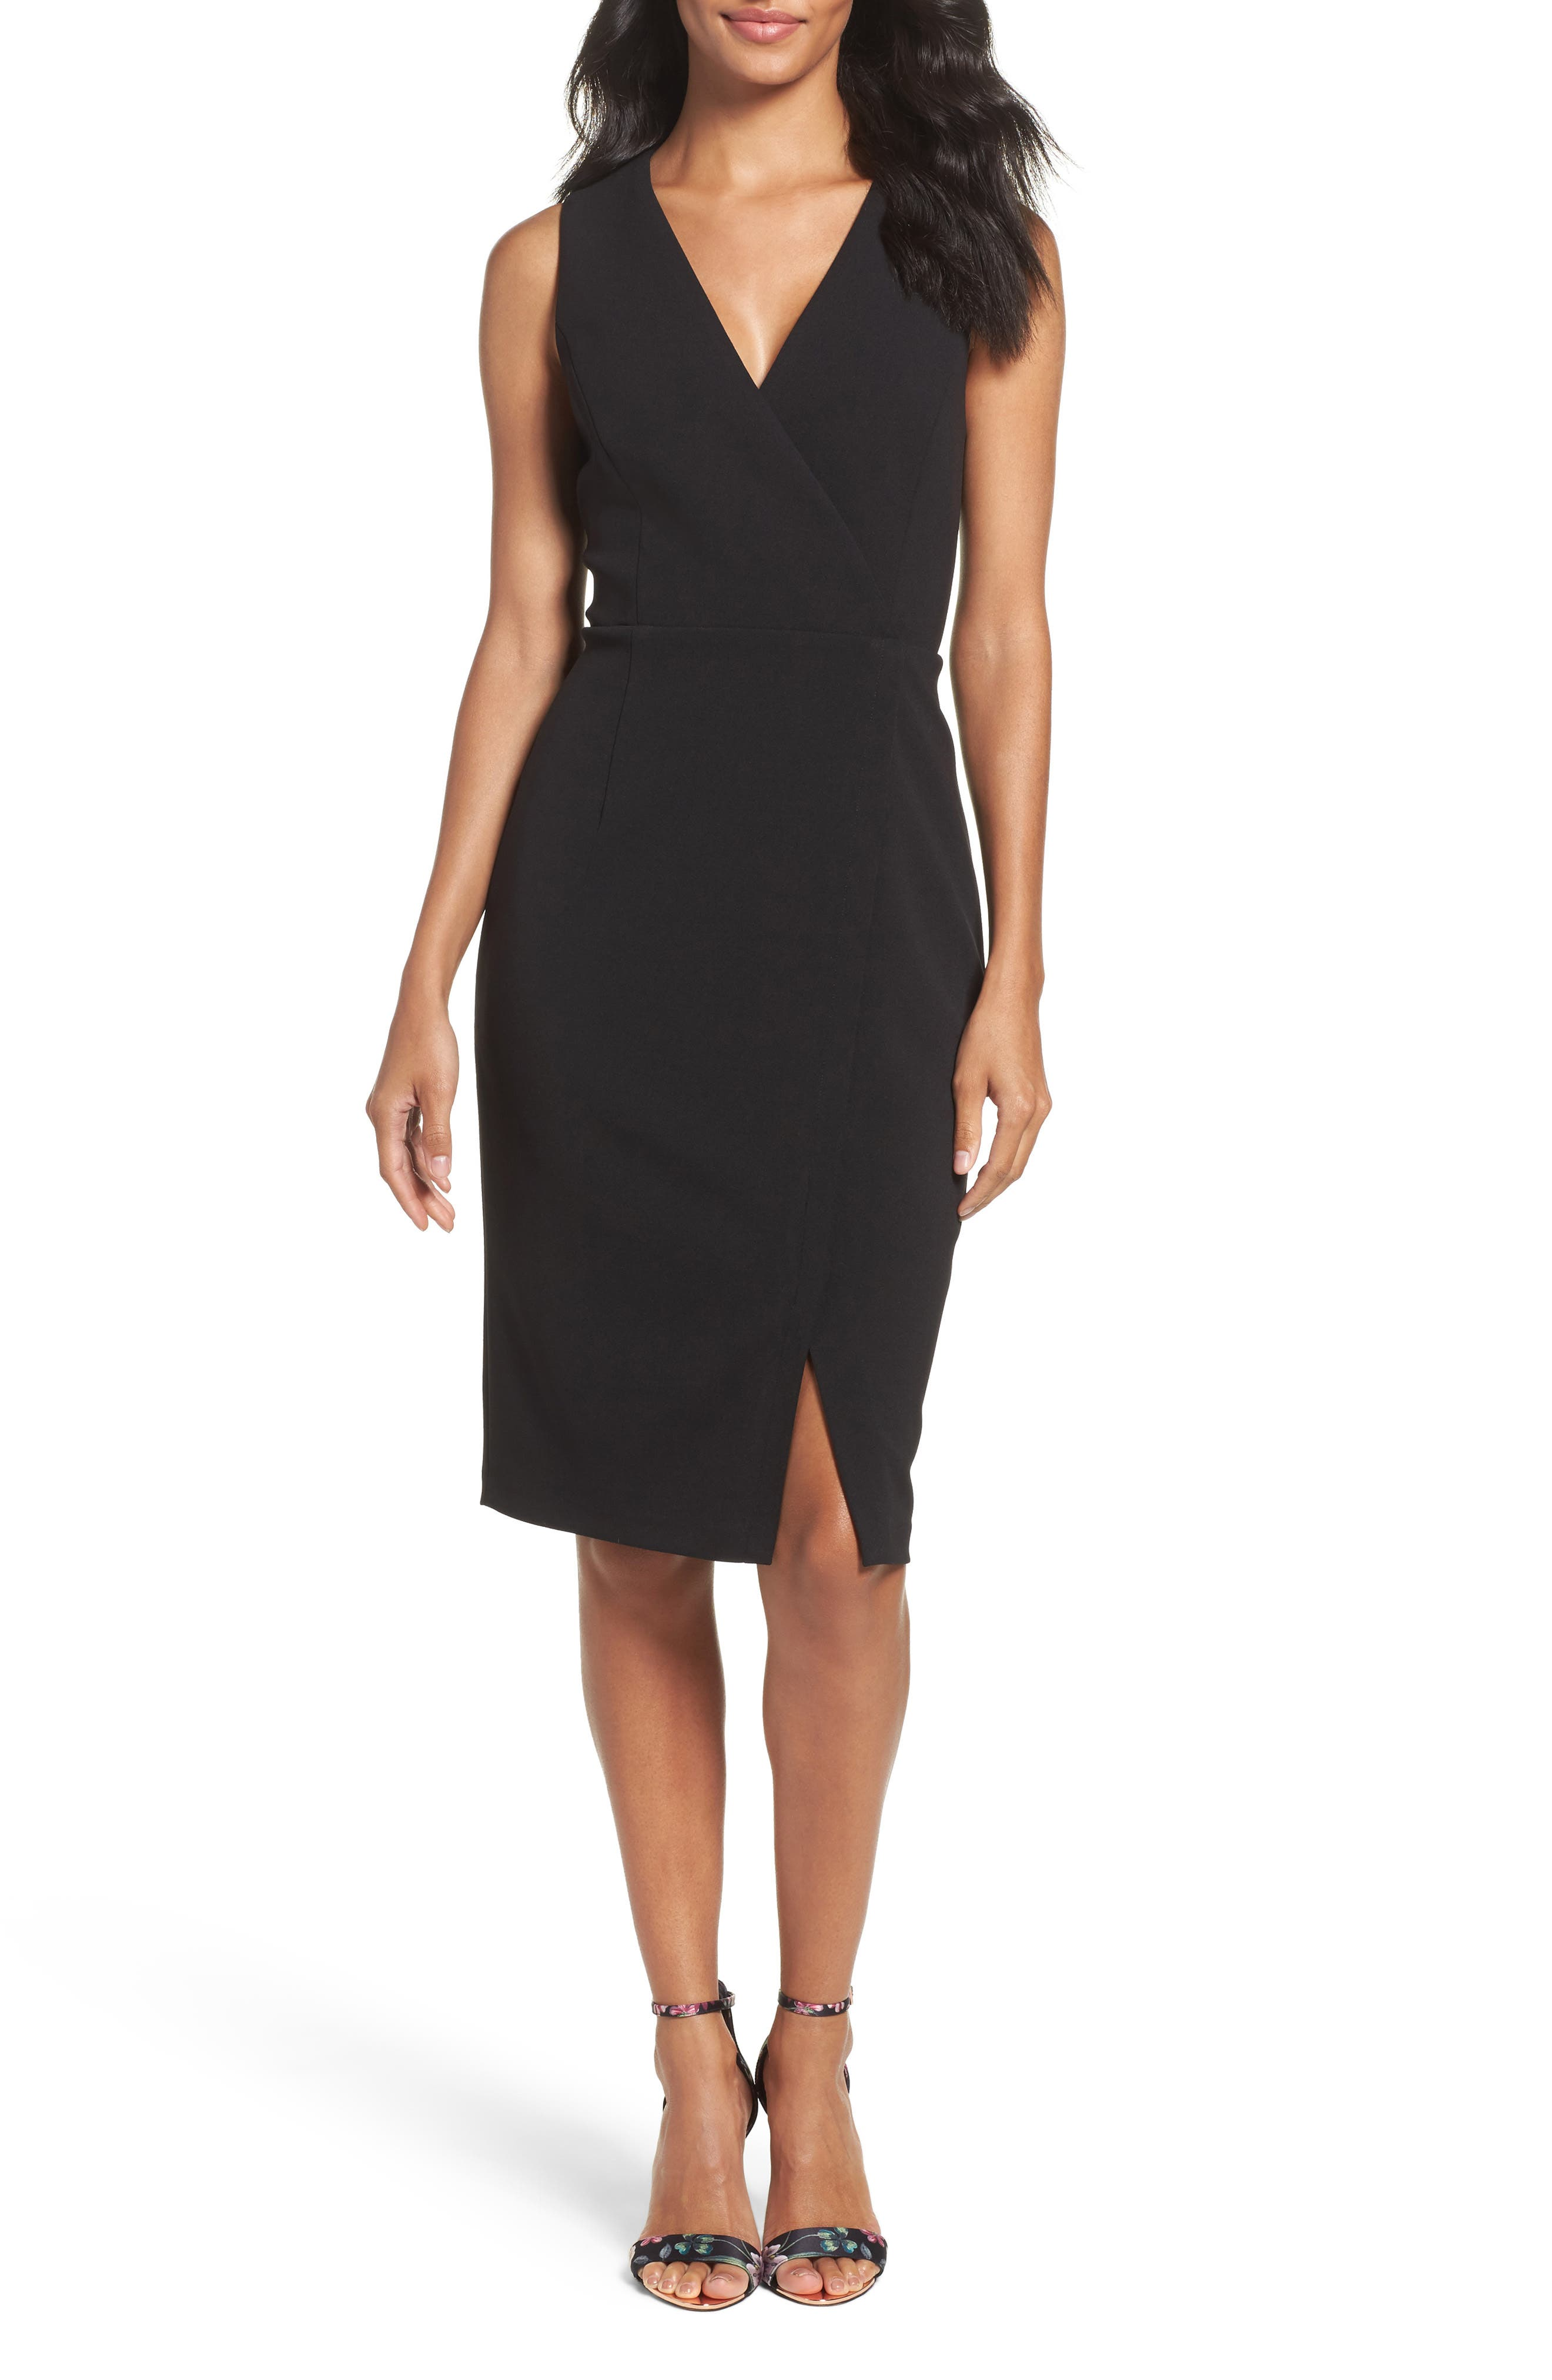 Alternate Image 1 Selected - Adrianna Papell Crepe Sheath Dress